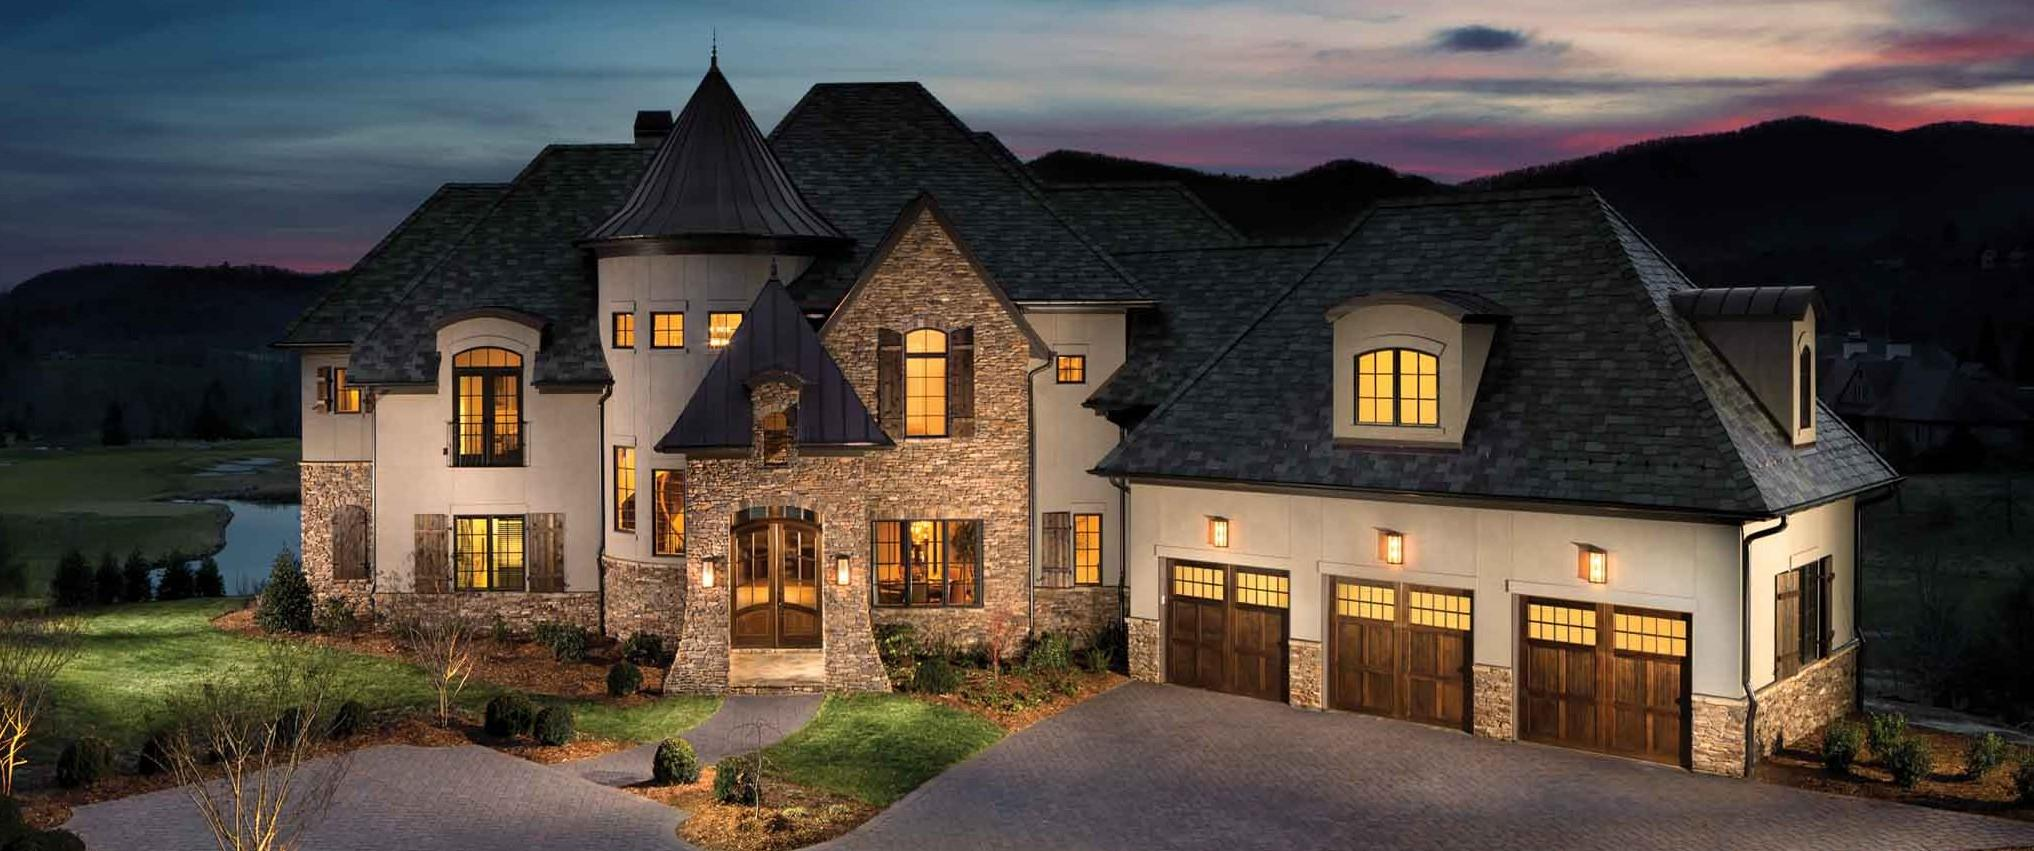 MEET ONE OF THE BUILDERS AT ZIONSVILLE'S NEW HOLLIDAY FARMS GOLF COMMUNITY!